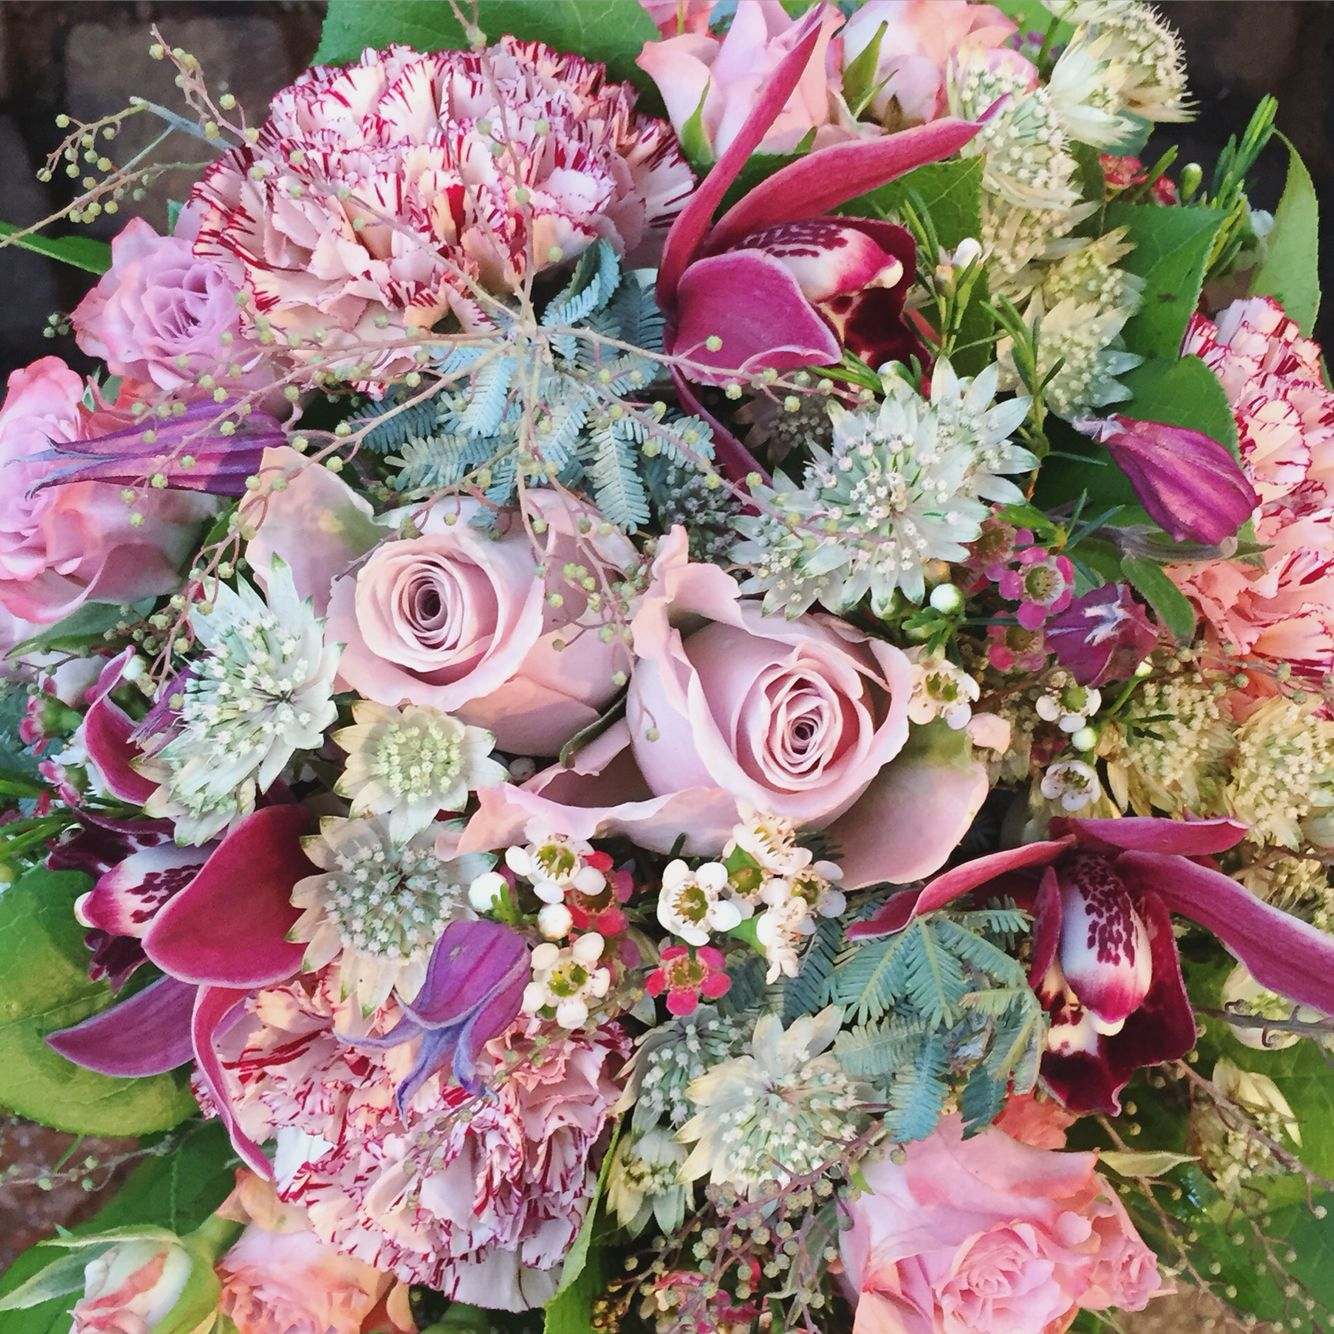 Pale Bouquet Using Roses Orchids Carnations Acacia Astrantia And Wax Flower Wax Flowers Orchids Astrantia